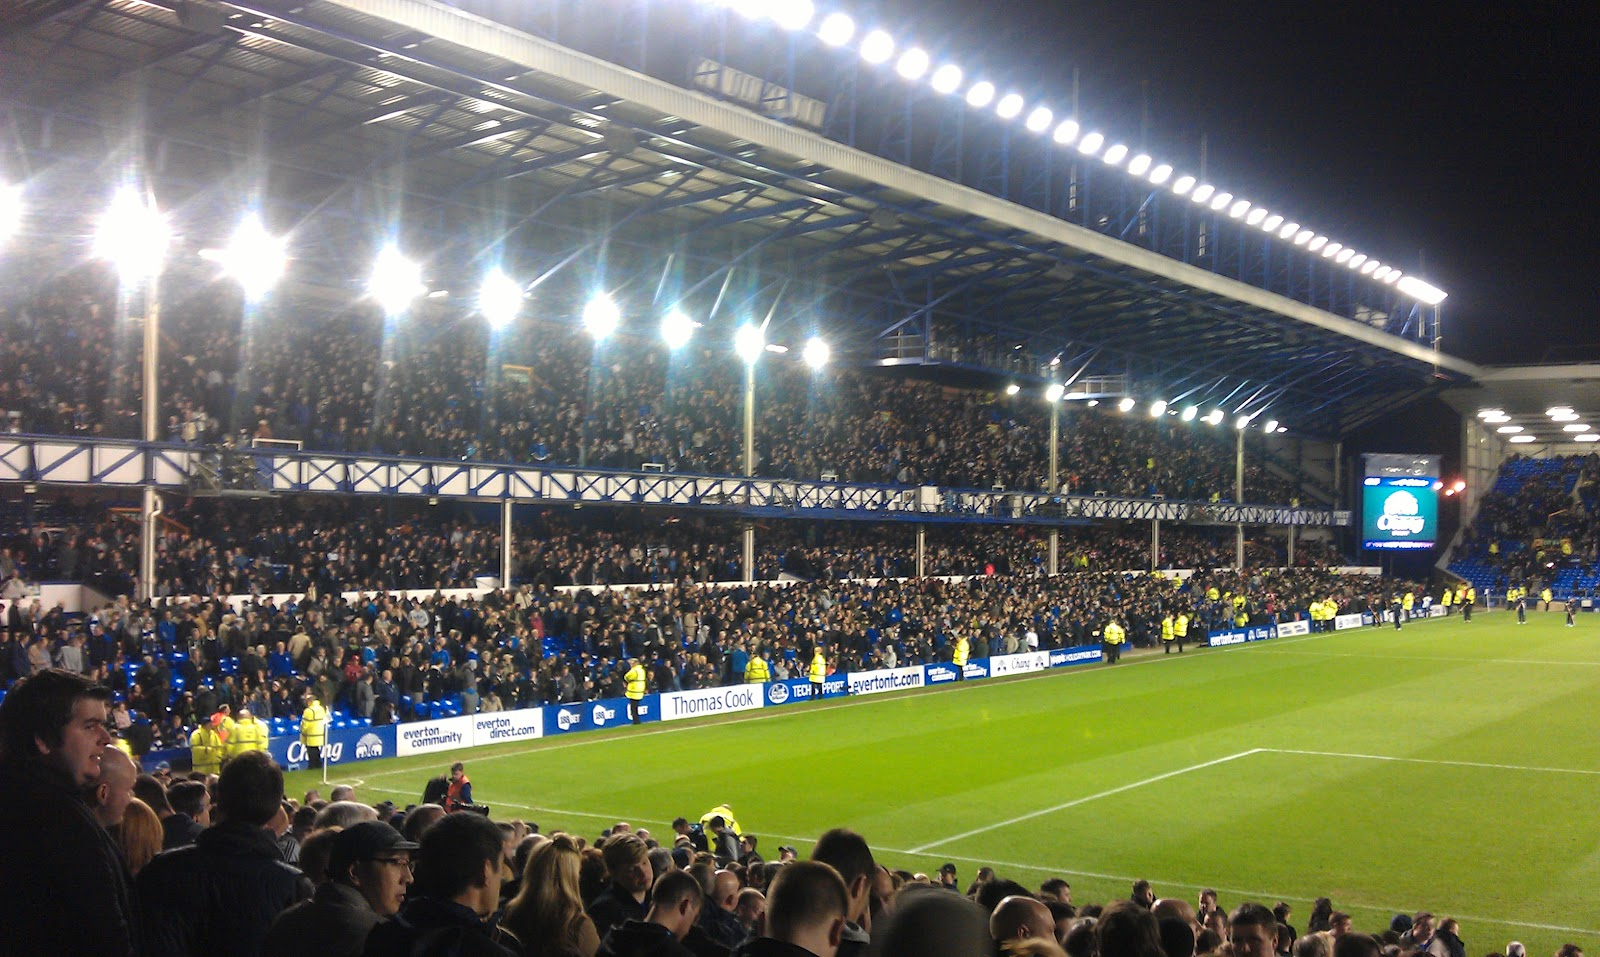 Everton Vs West Bromwich Albion Tickets